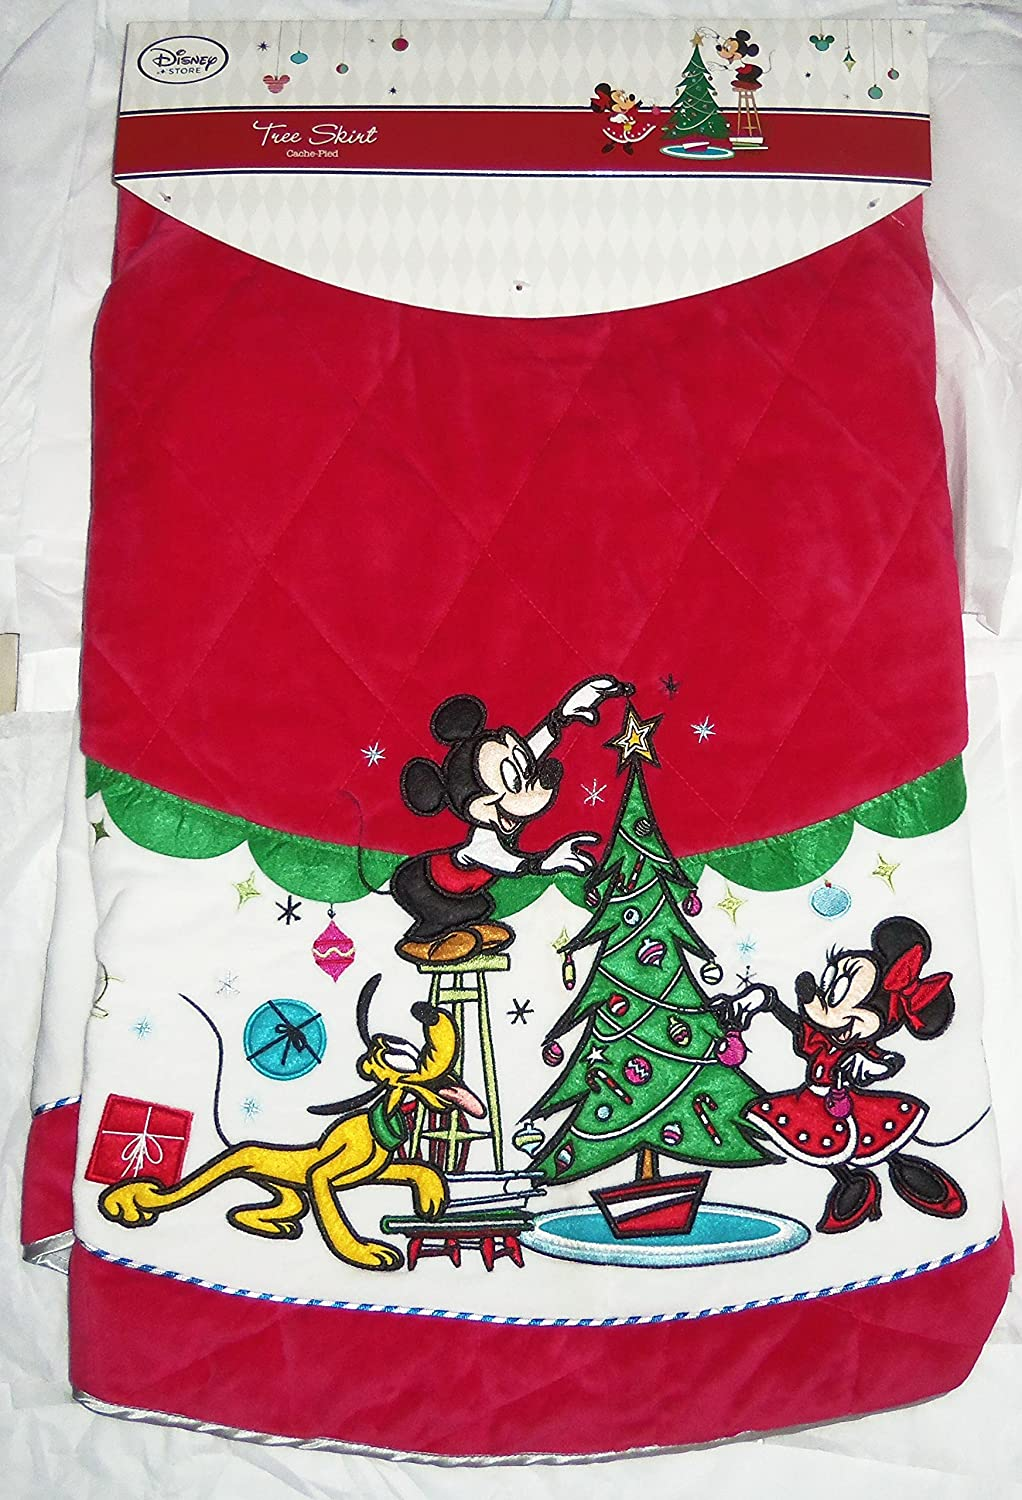 Charming Amazon.com: Disney Store Christmas Tree Skirt Minnie Mickey Mouse Pluto  Red: Home U0026 Kitchen